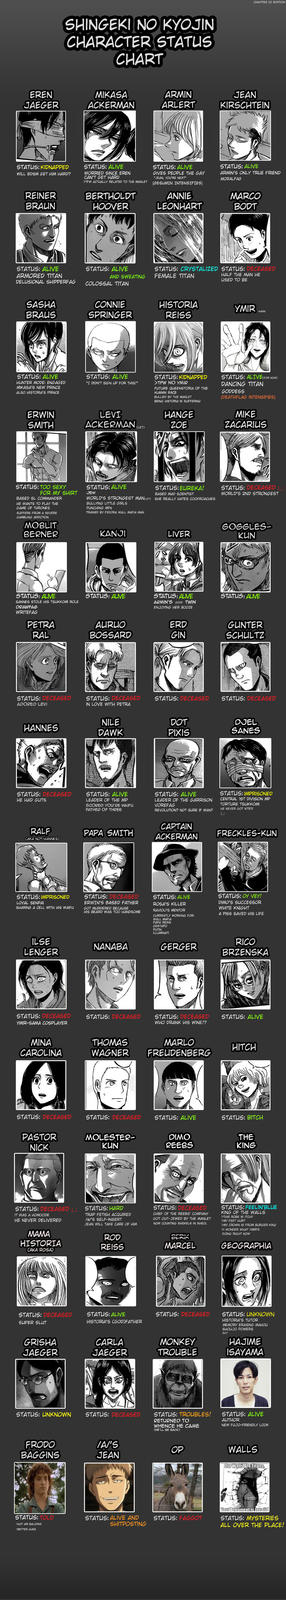 The updated chart in light of most recent chapter(s)